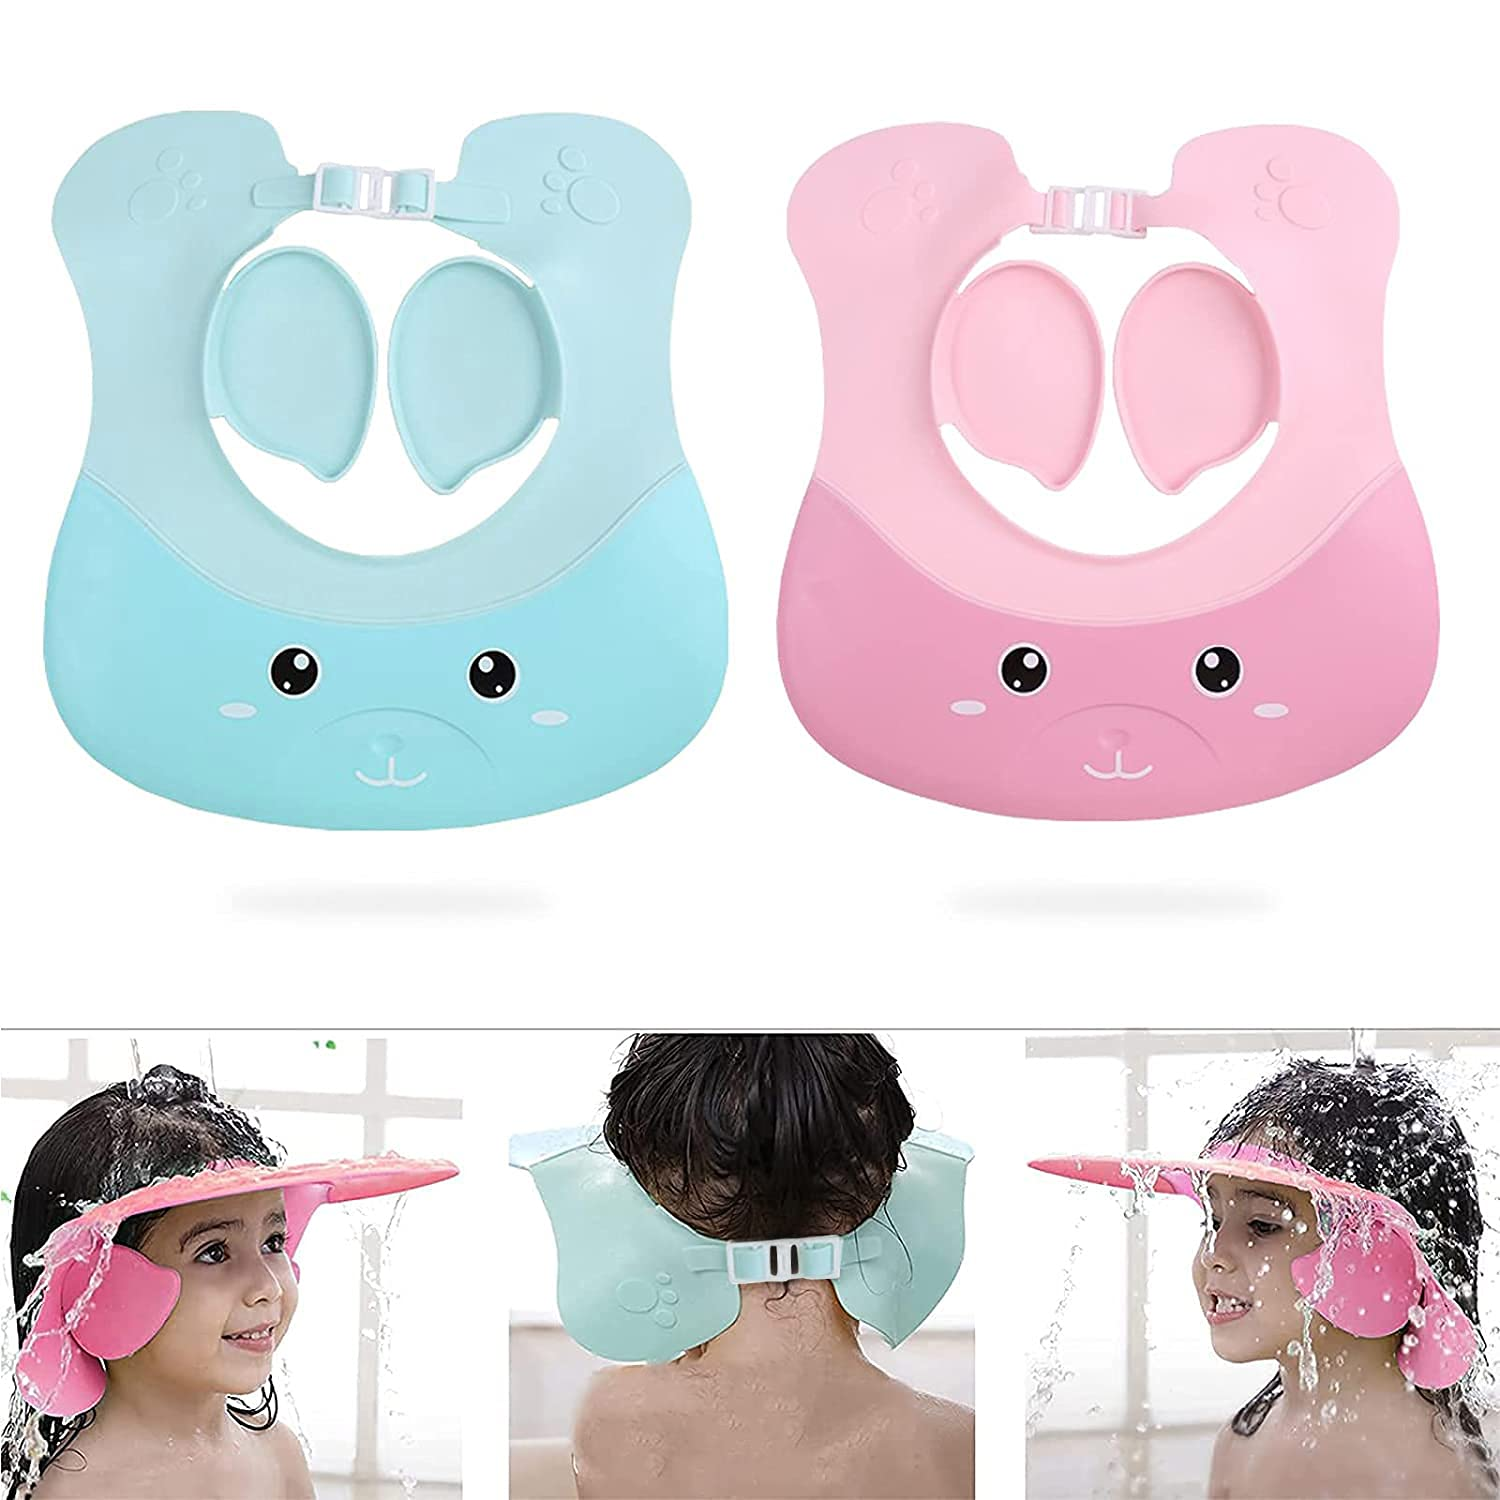 Baby Hair Washing Hat for Toddlers,Silicone Baby Shower Cap Adjustable Bathing Hat, 2pcs Shampoo Shower Bath Visor Hair Washing Protection Bath Cap for Infants Toddlers Baby Kids Children